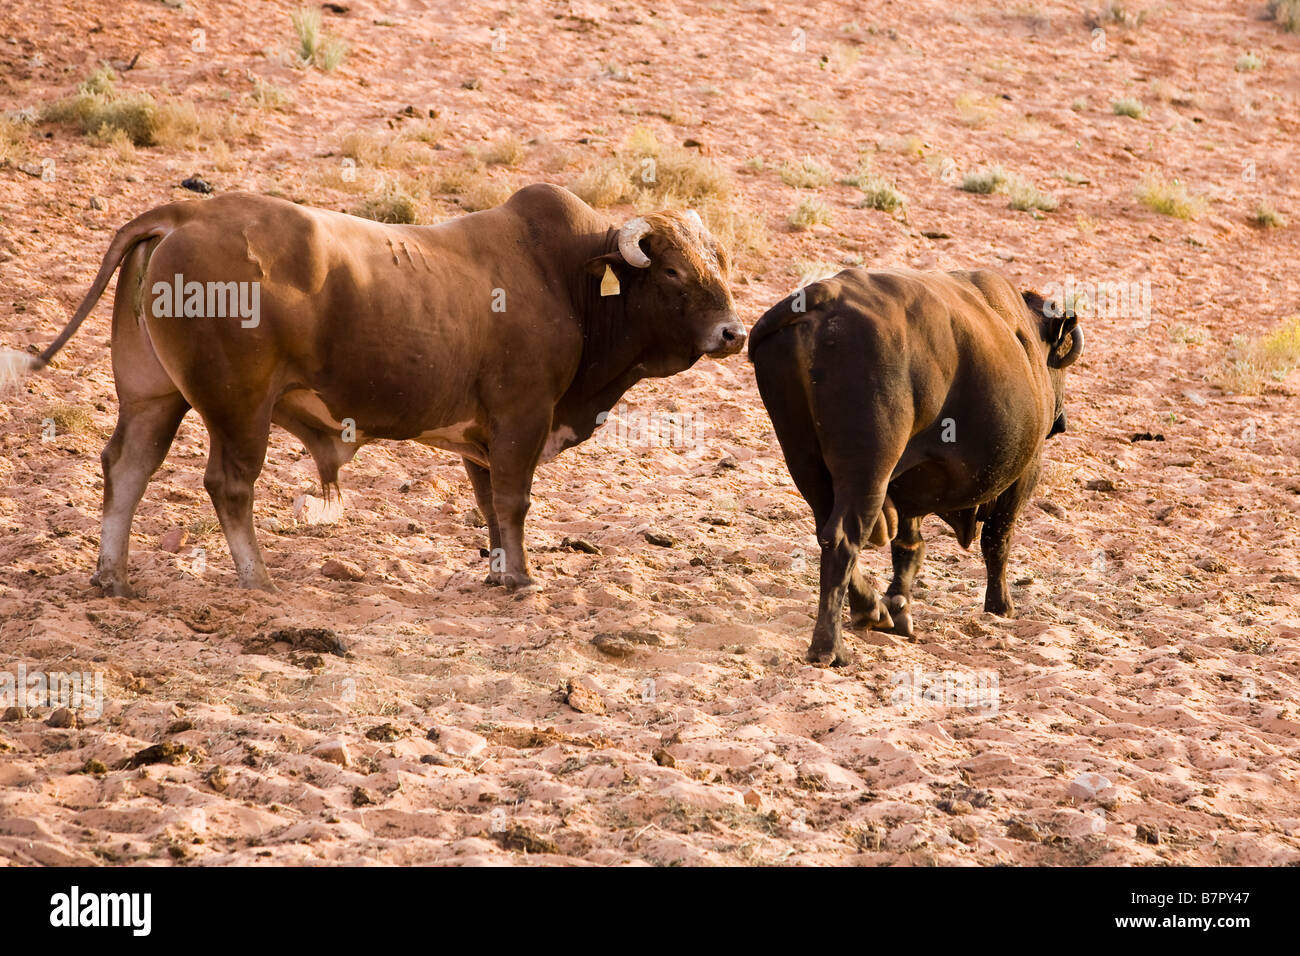 Cattle breeding in Arizona, USA - Stock Image